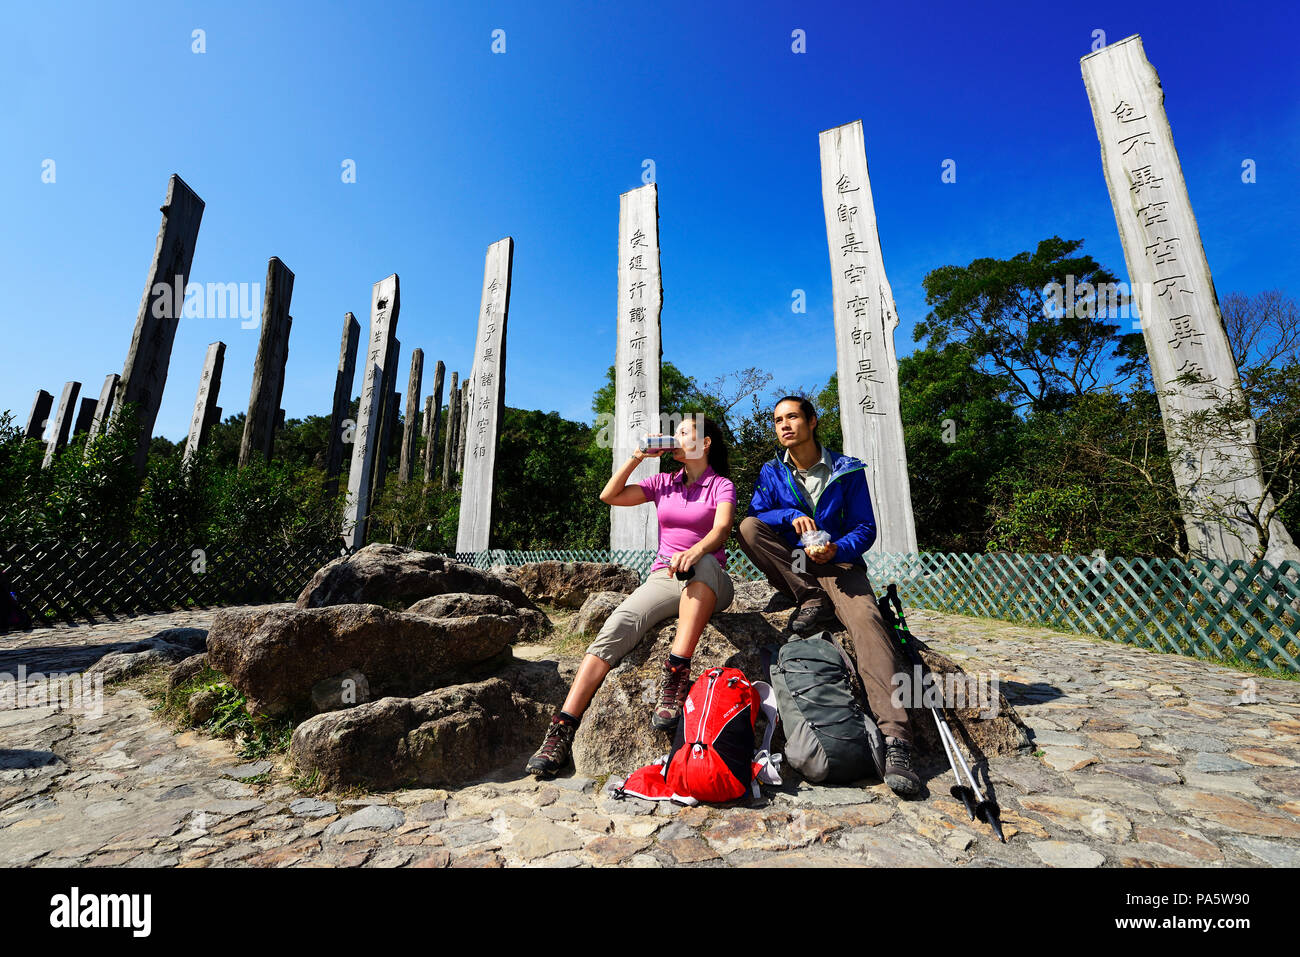 Hikers rest in front of wooden steles at Wisdom Path, Lantau Island, Hong Kong, China - Stock Image